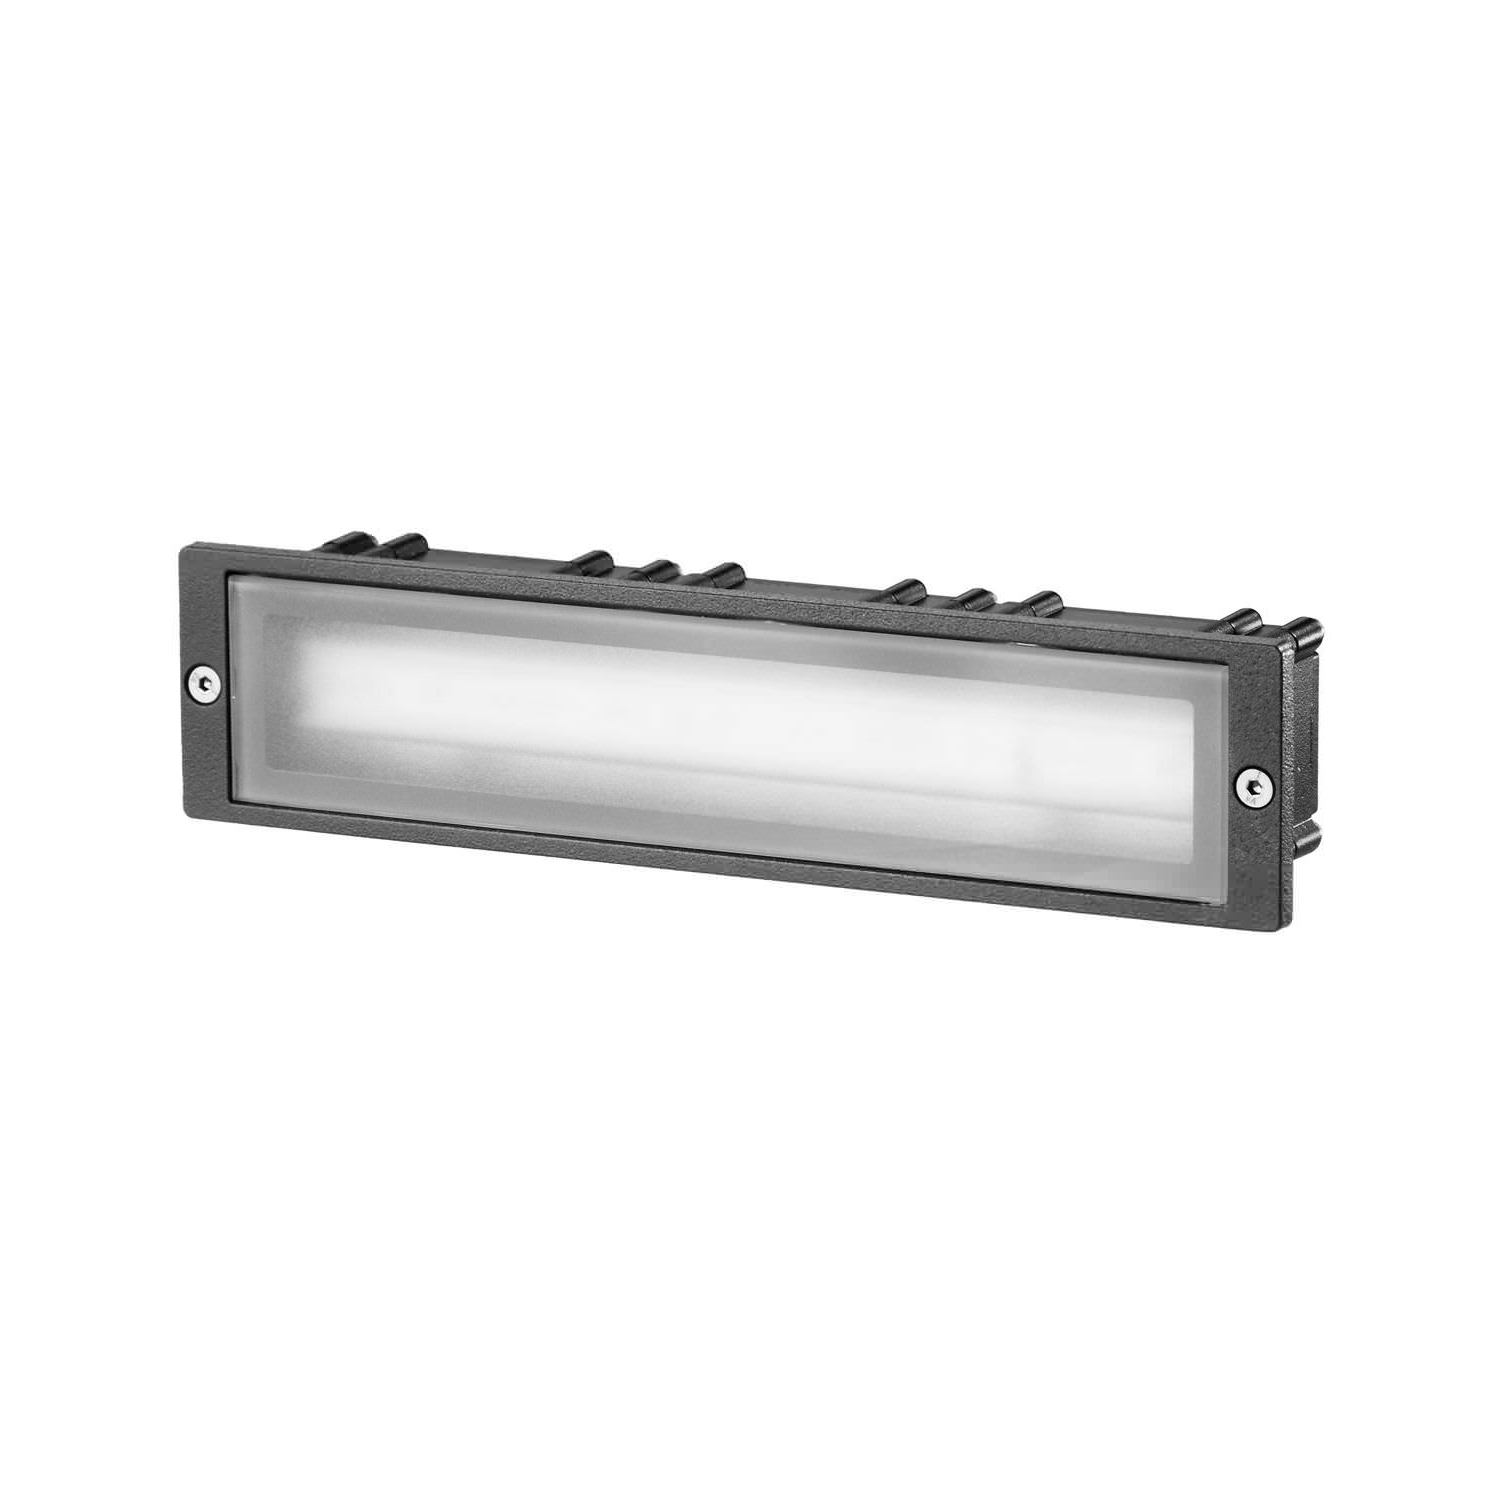 John Lewis Outdoor Ceiling Lights With Regard To 2018 Decorations Outdoor Wall Porch Lights John Lewis Outside Recessed (View 11 of 20)